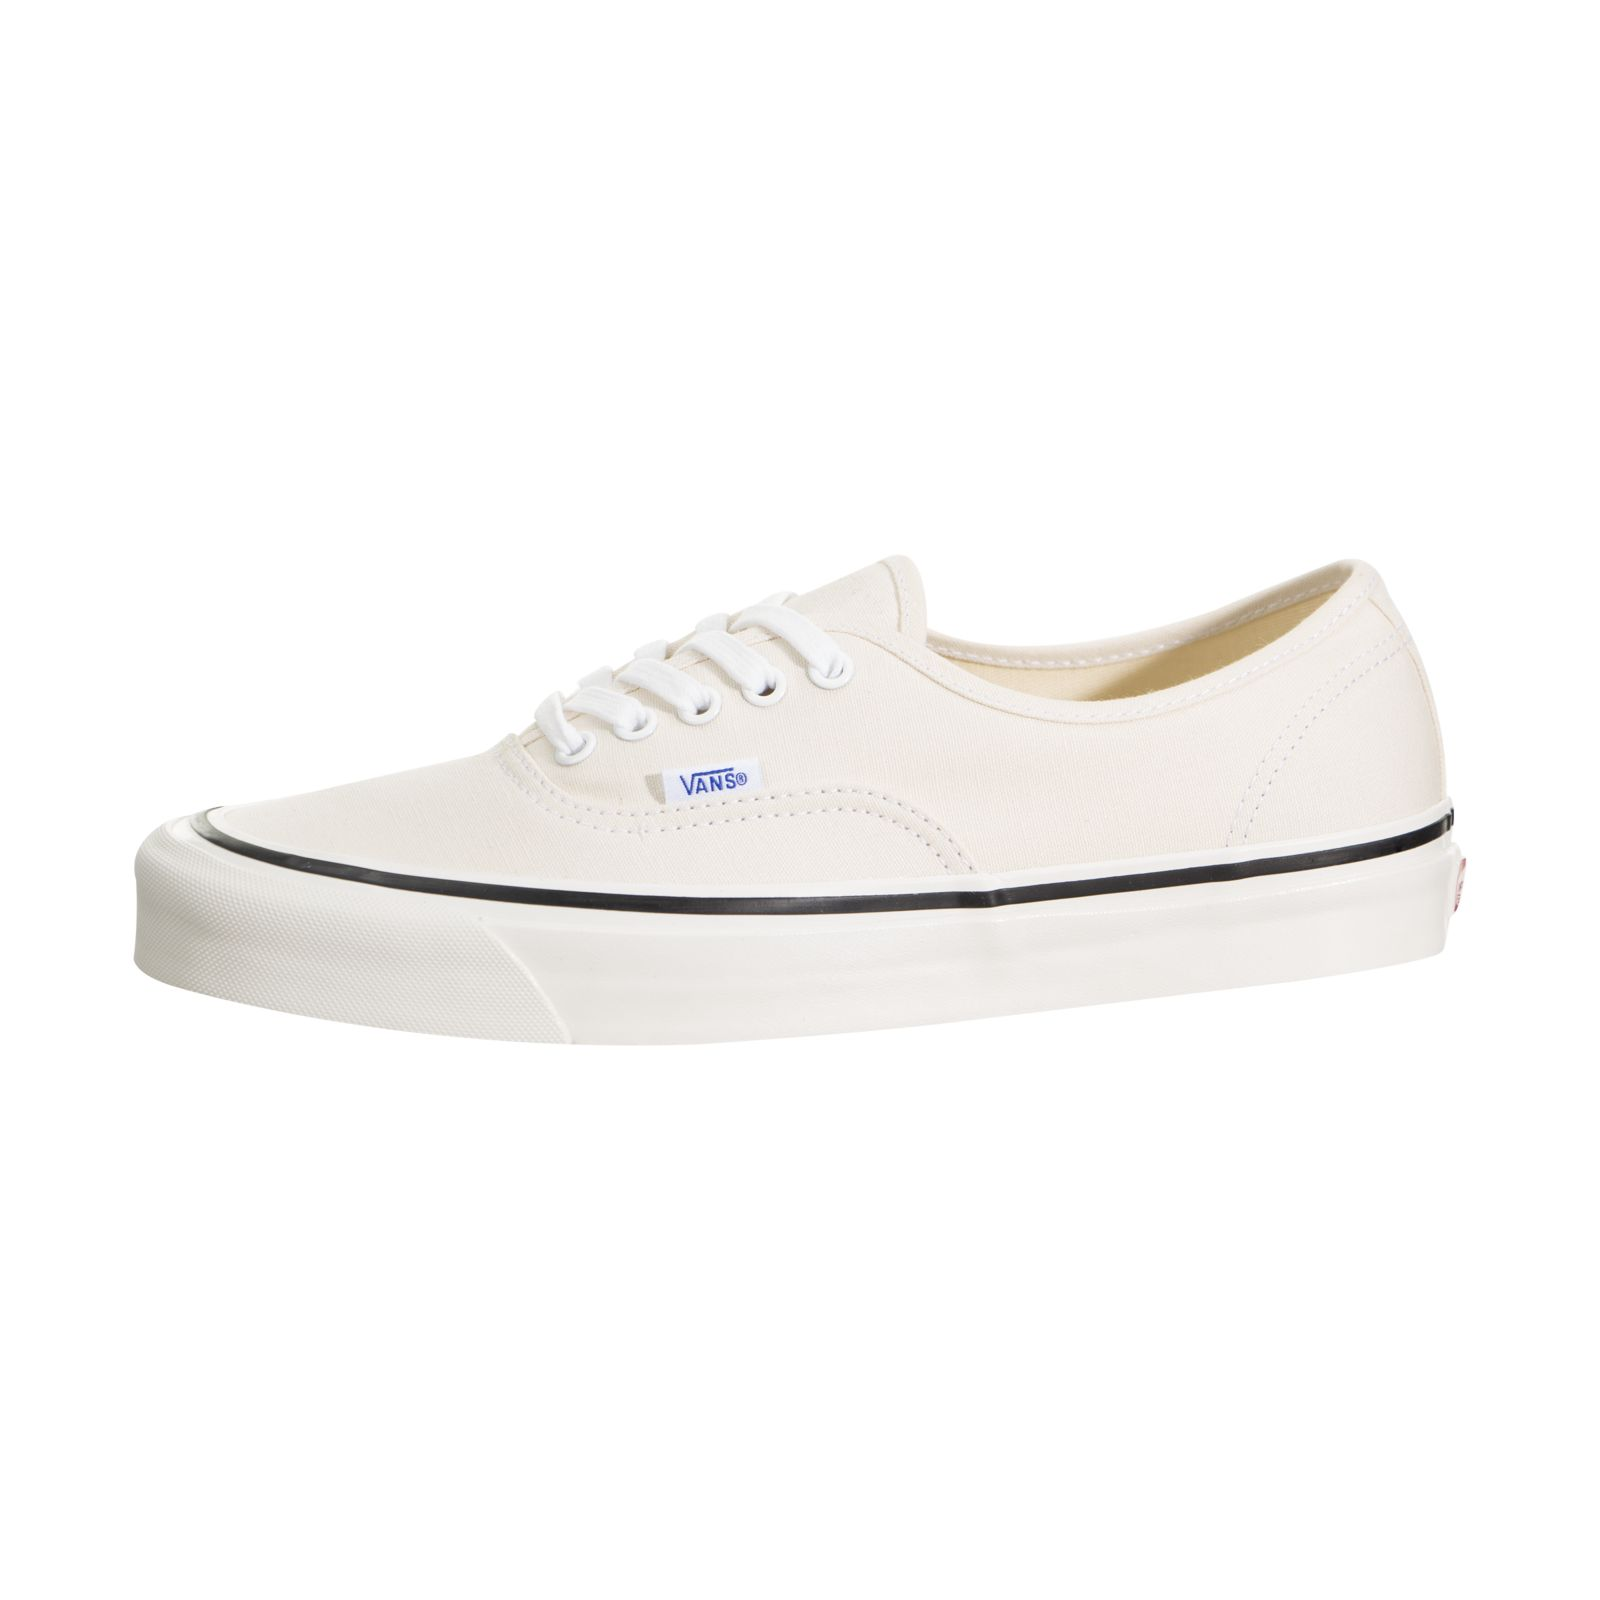 4975951a873 Mens VANS Authentic 44 DX off White Black Vn0a38enmr4 US 7.5 for ...